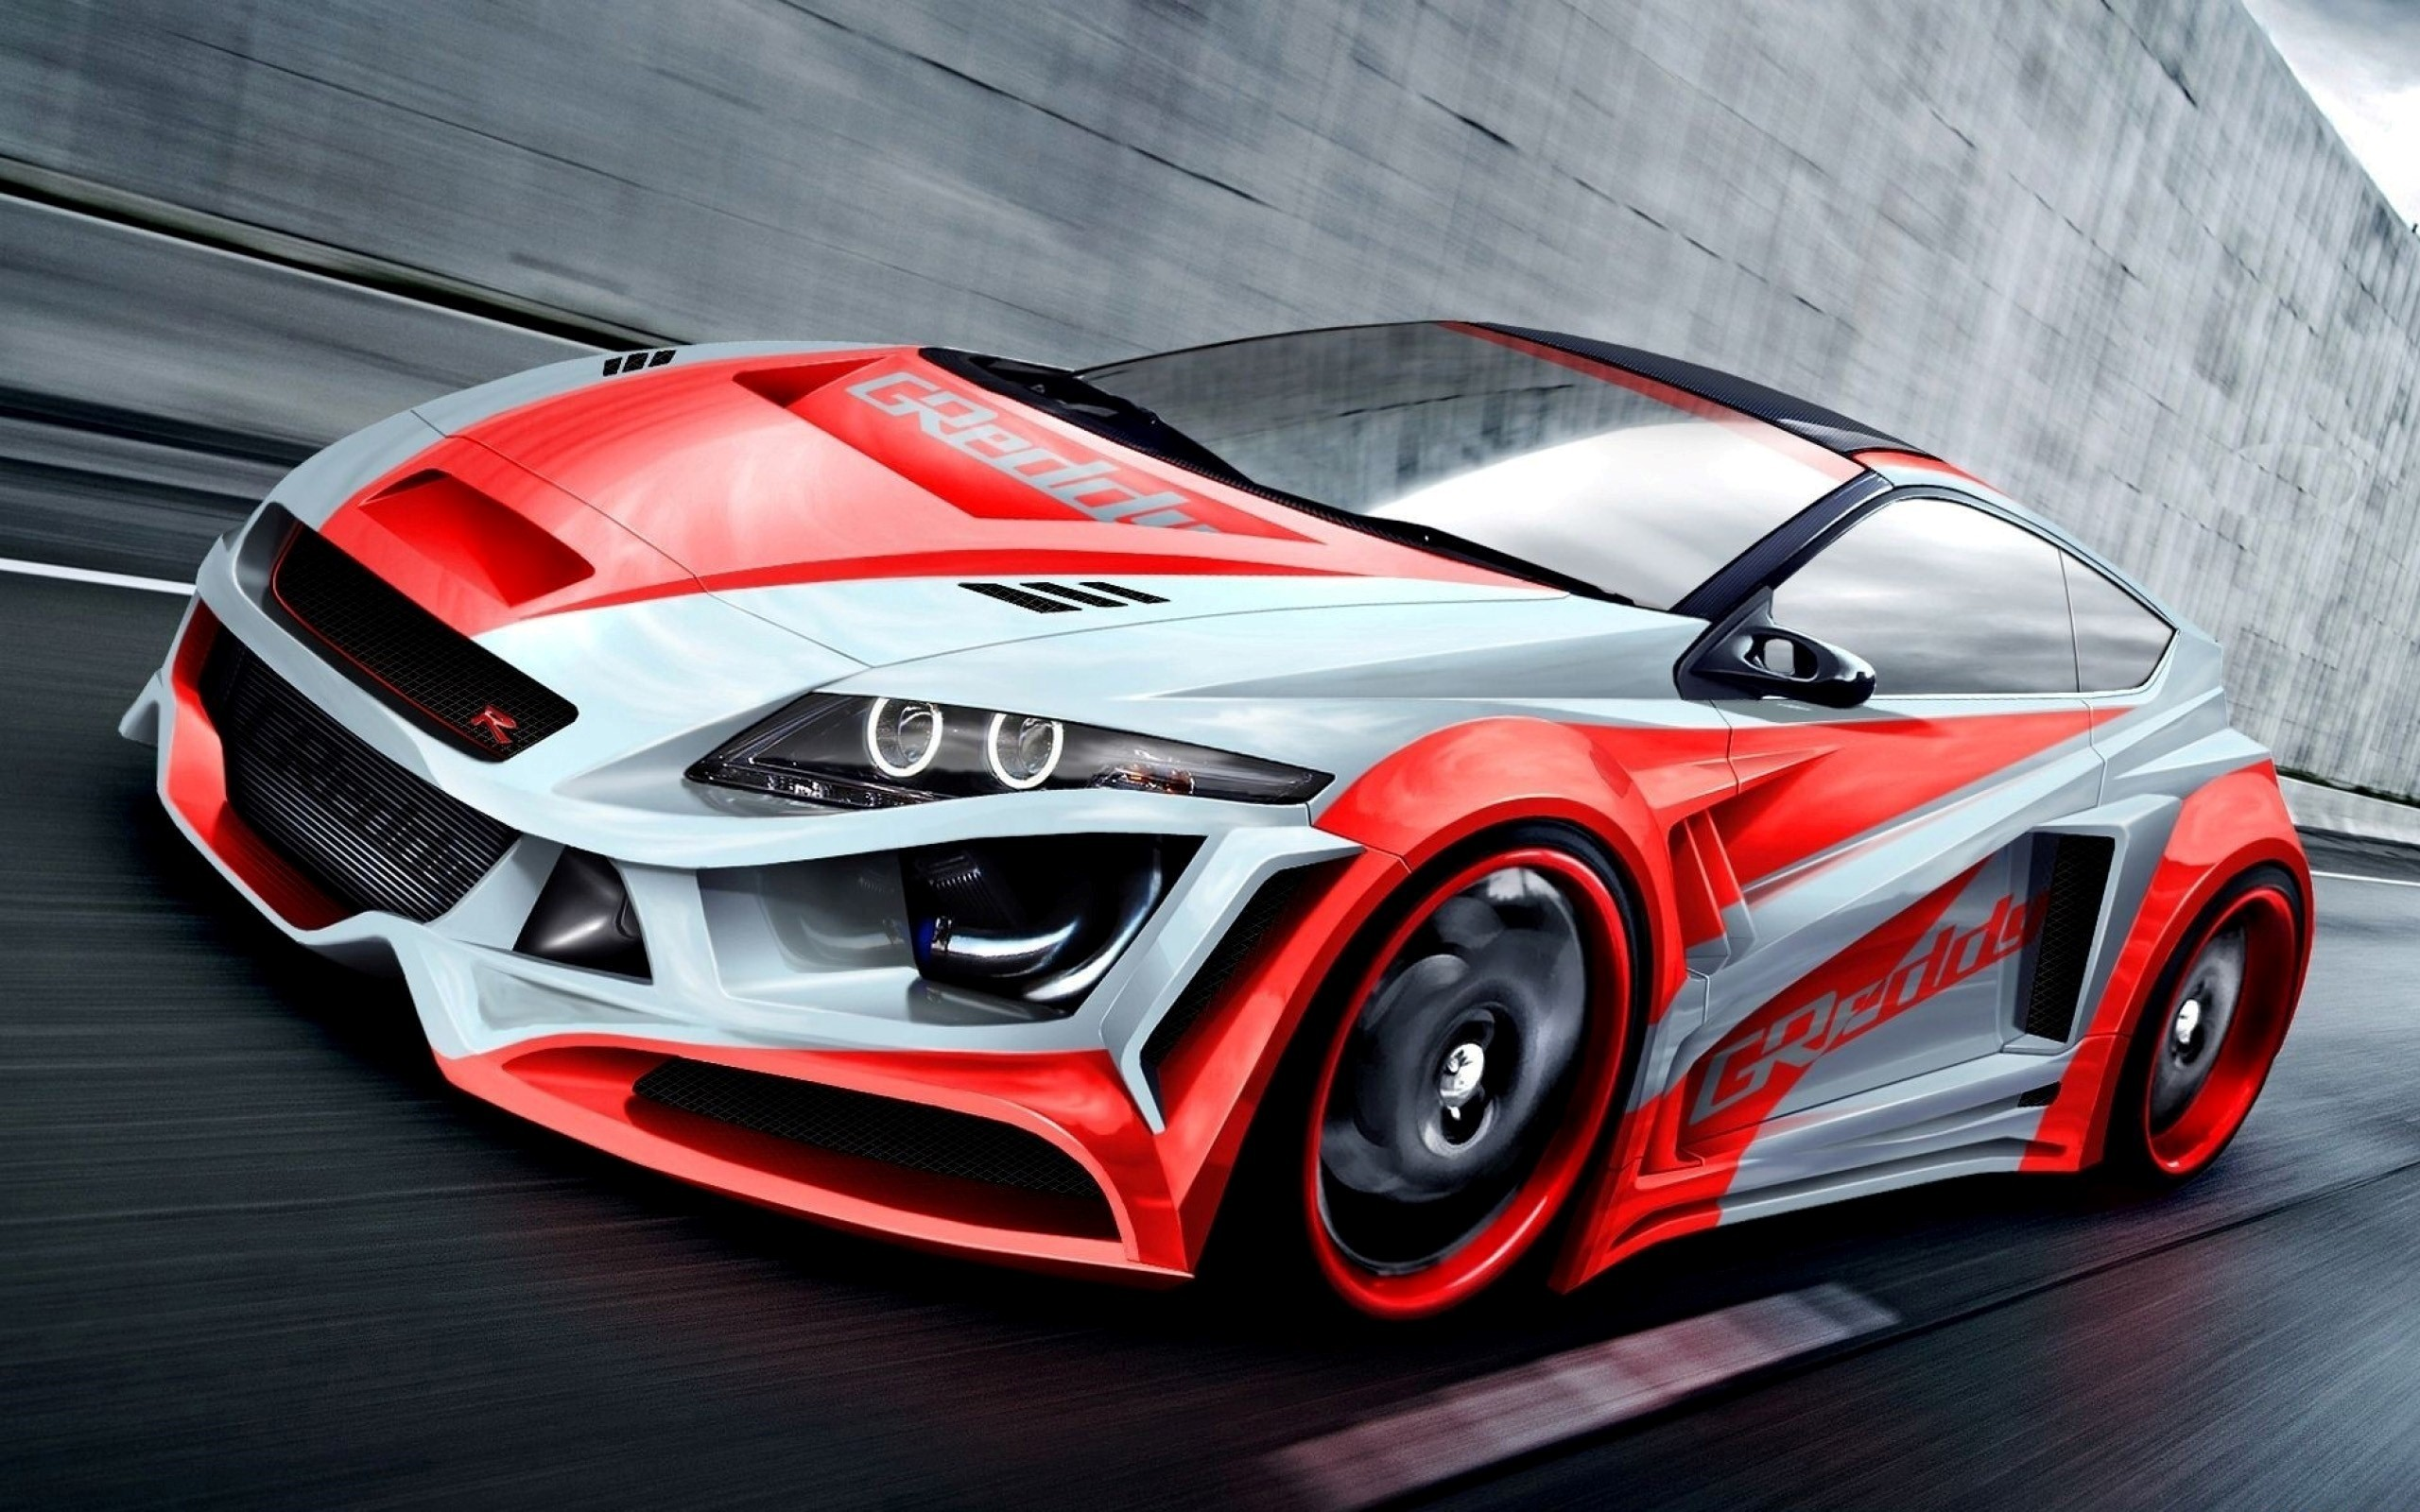 Res: 2560x1600, racing-cars-background-pictures-new-best-hd-wallpapers-